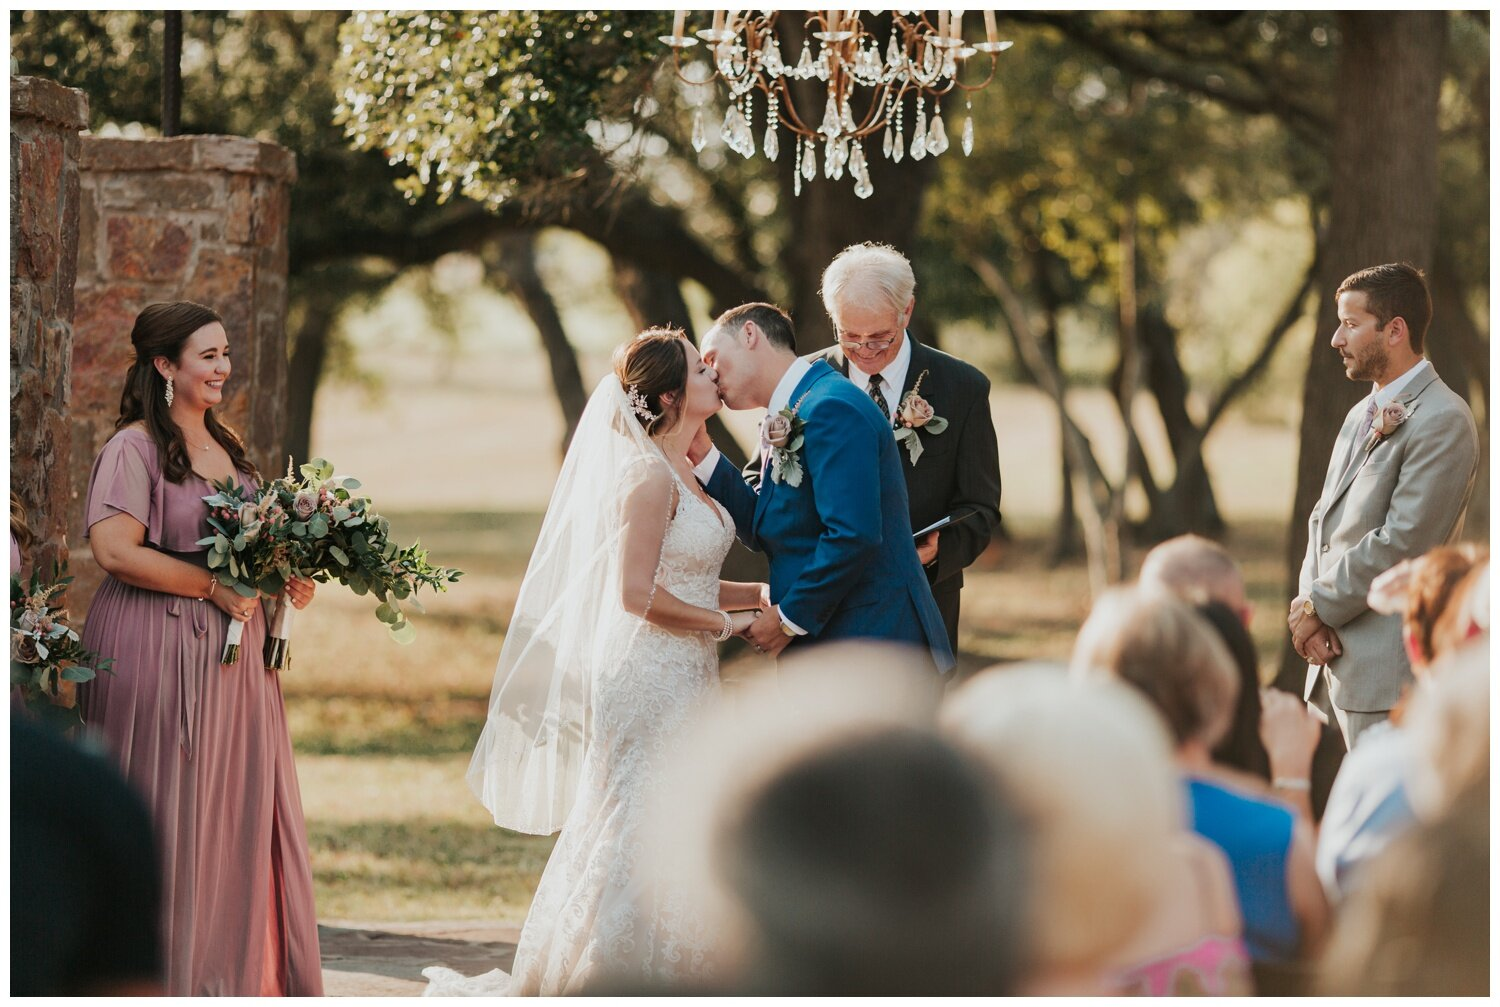 Modern Wedding at Ma Maison in Dripping Springs, Austin, Texas (Joshua and Parisa – Austin Wedding Photographer)_0045.jpg